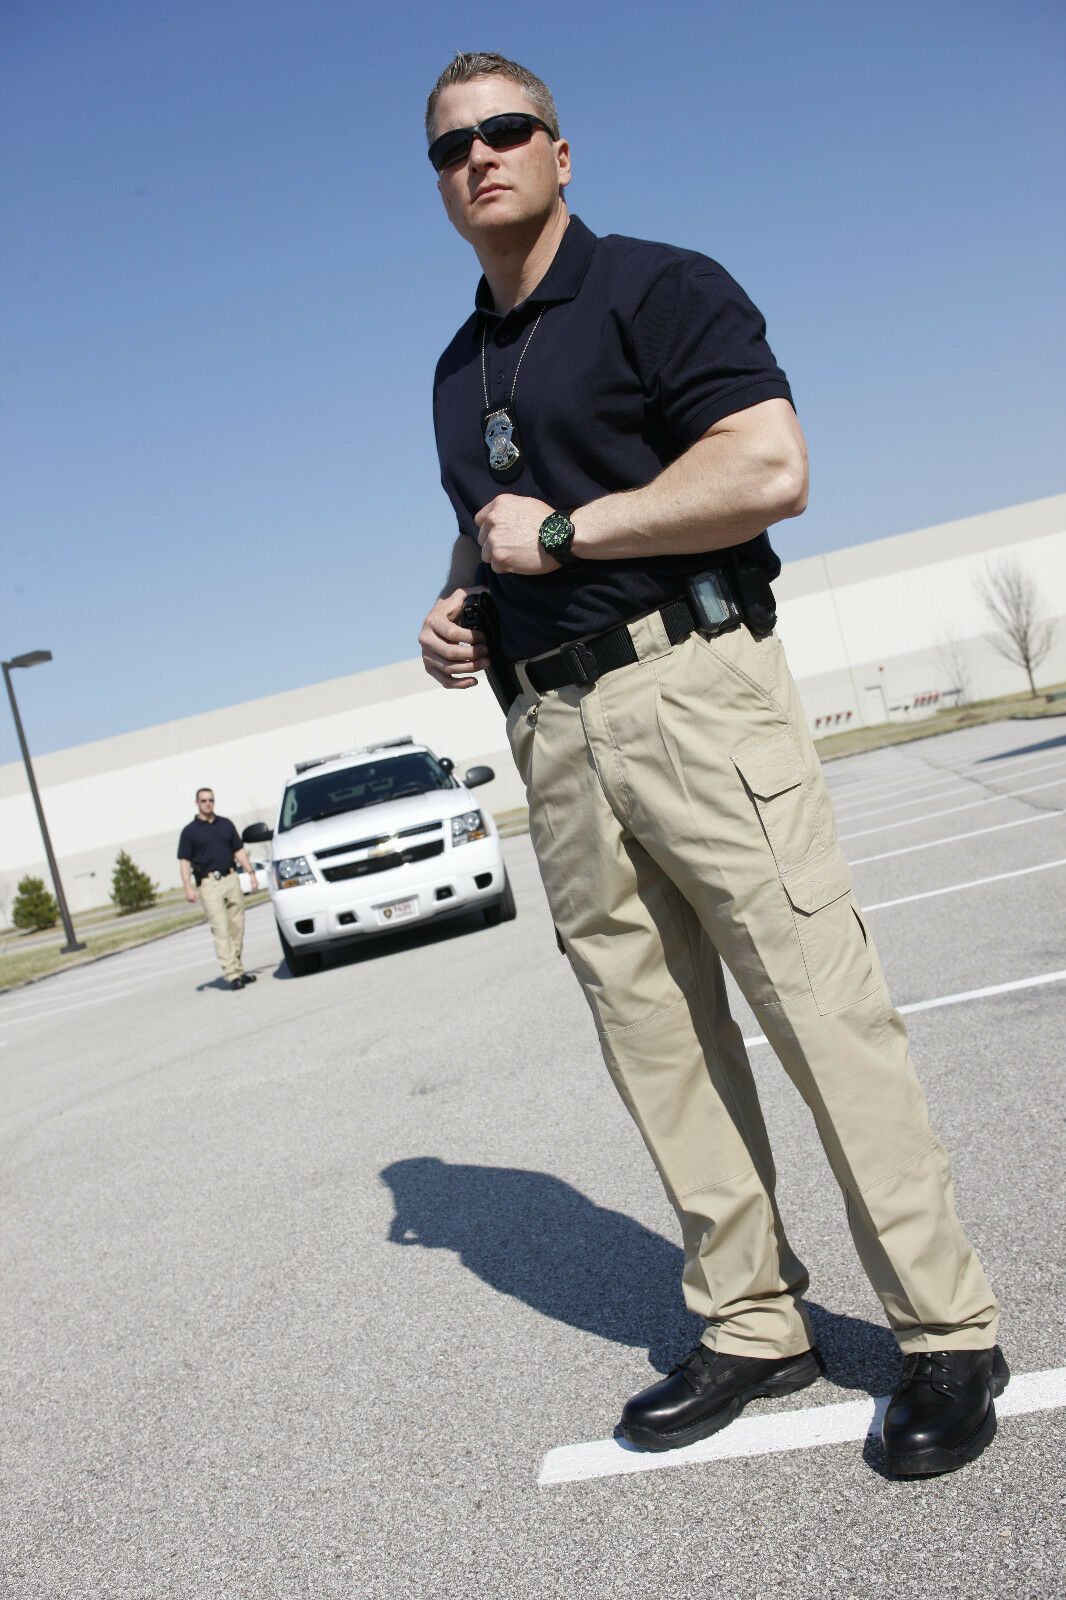 Men's Lightweight Tactical Pant LEO-CCW Avail in 7 colors by Propper F5252-50